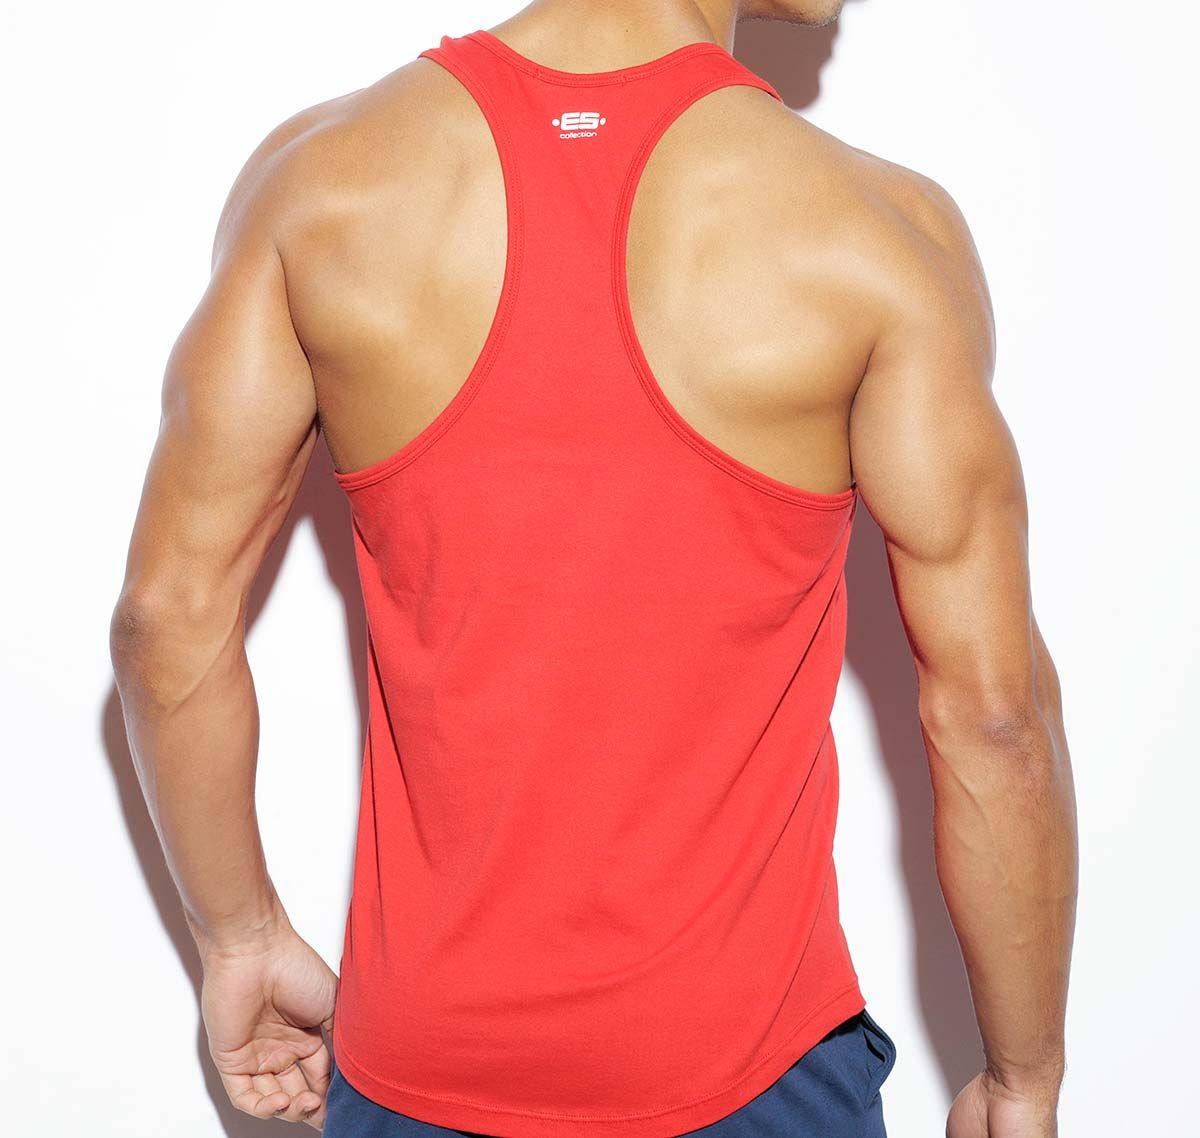 ES Collection NEVER BACK DOWN BADGE TANK TOP TS170, rot